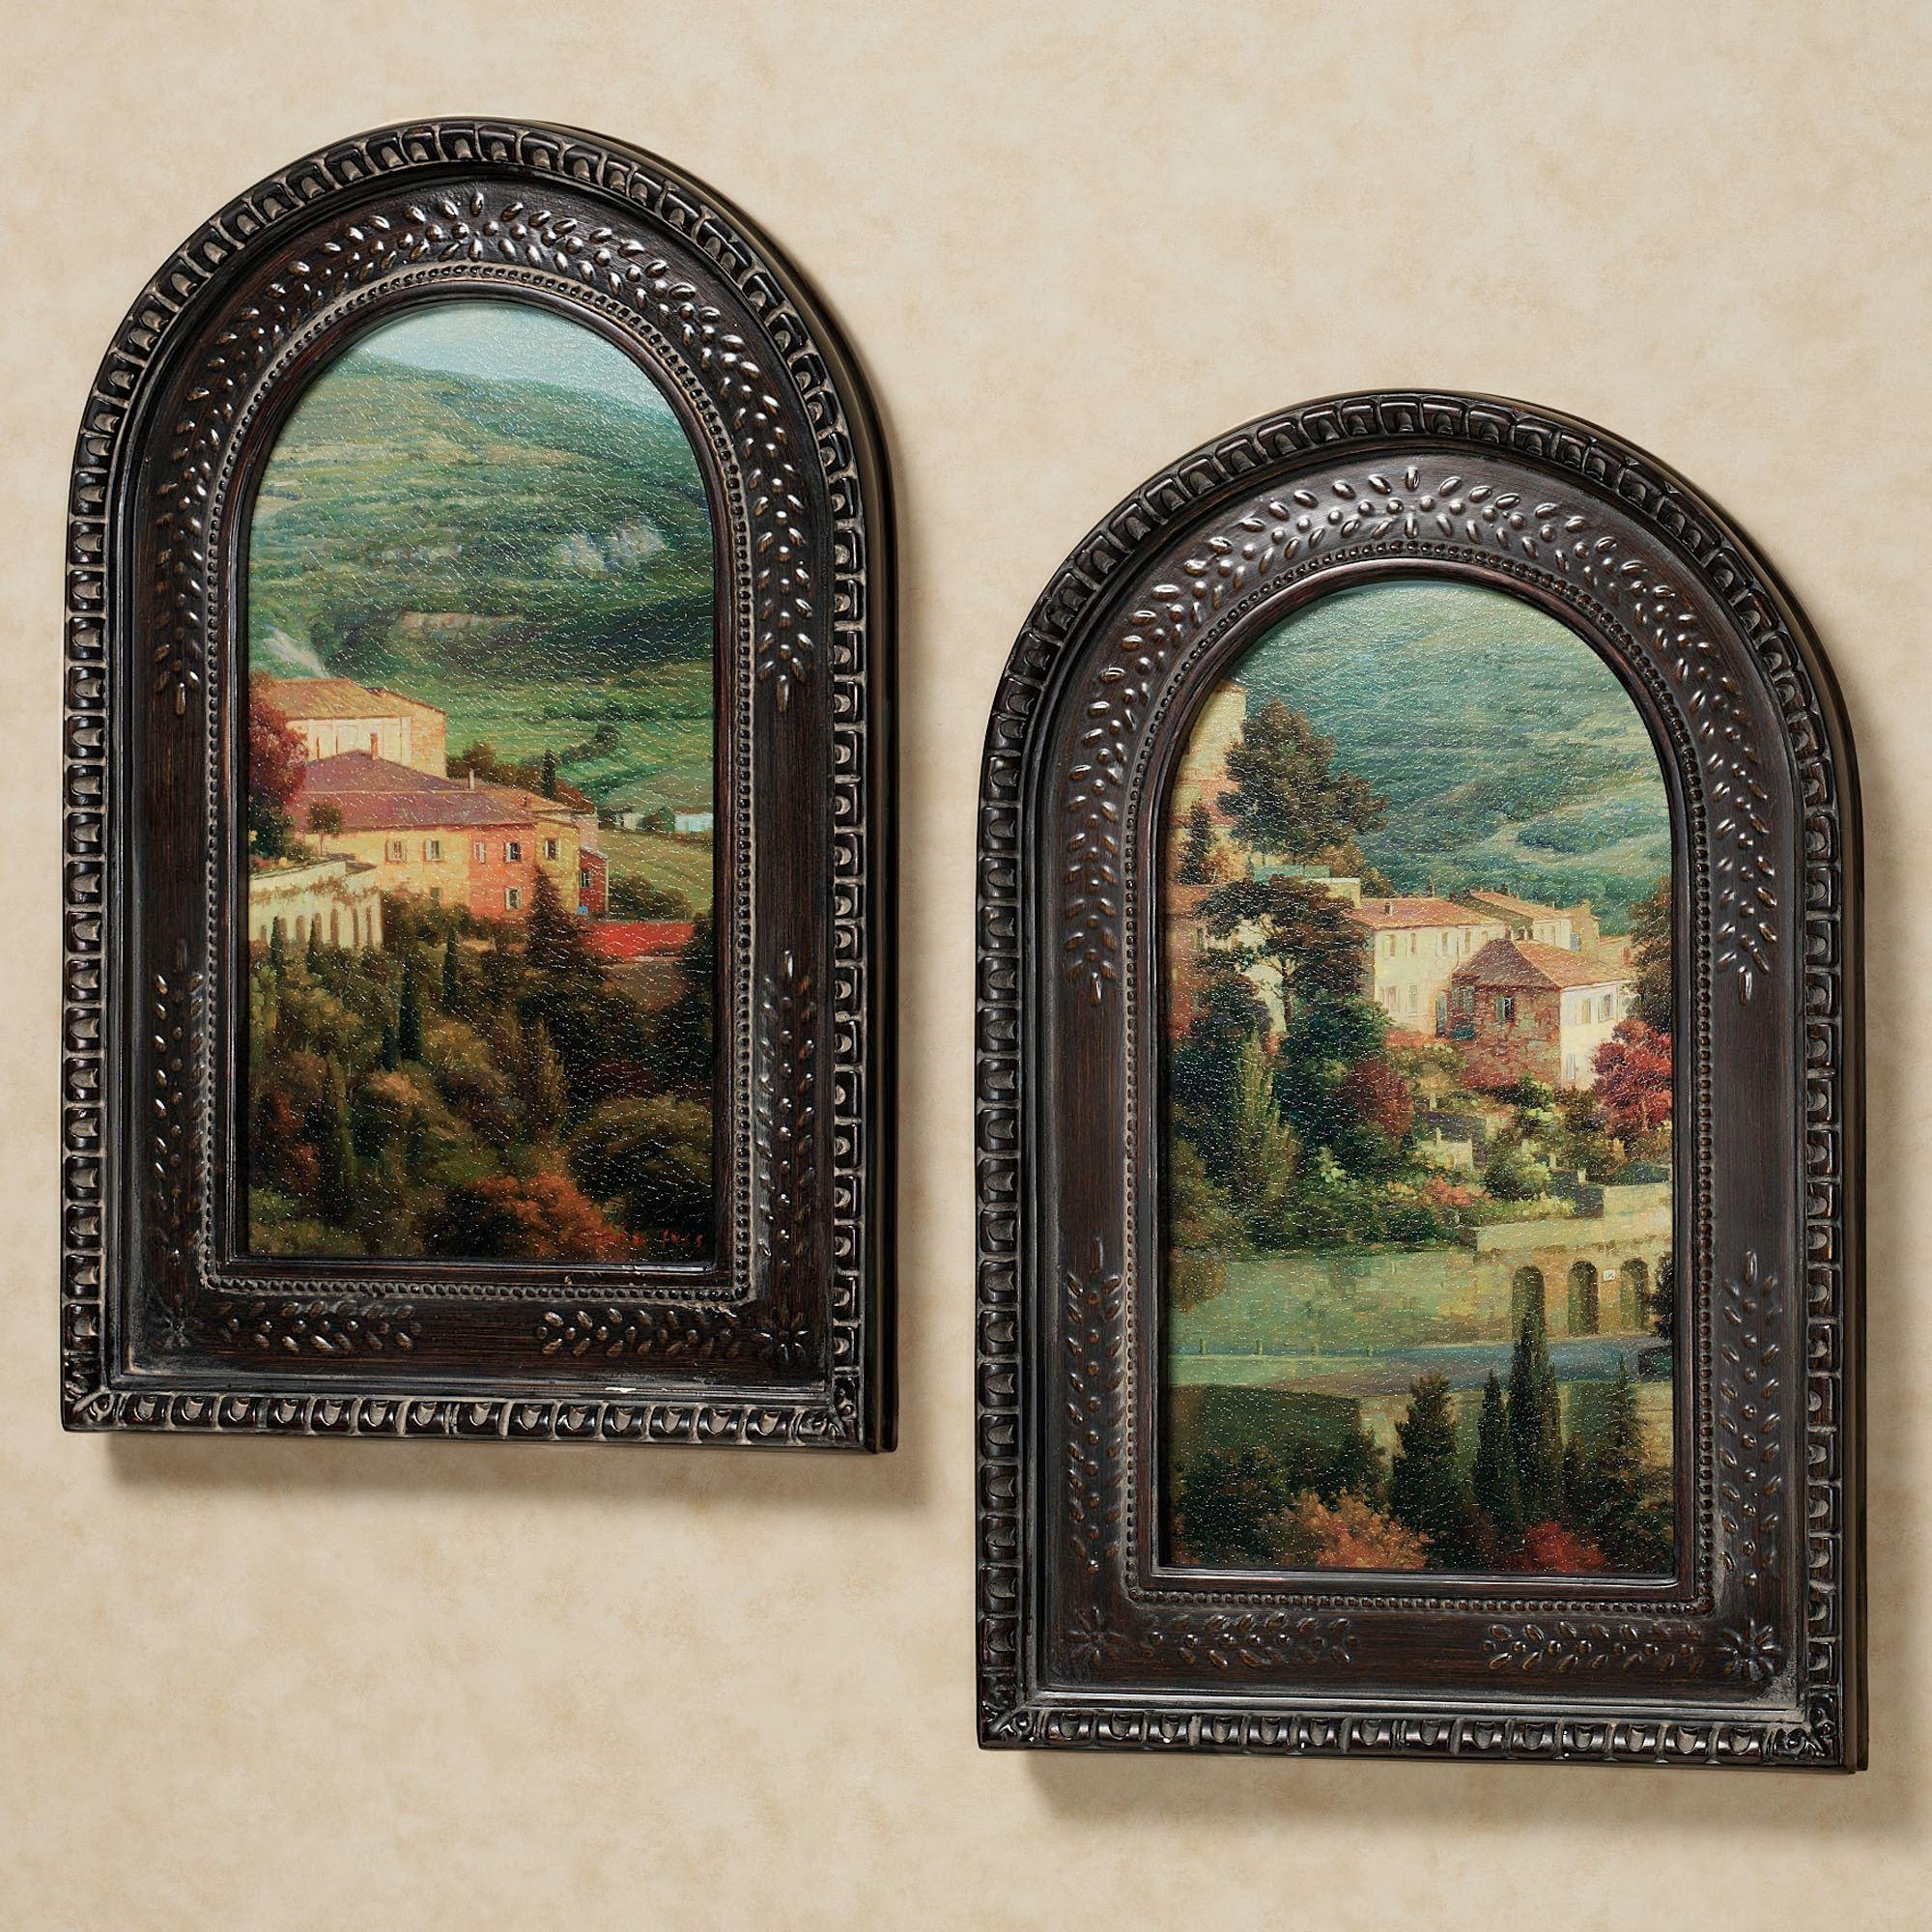 Italian Overlook Framed Wall Art Set Regarding Italian Wall Art Decor (Image 3 of 20)